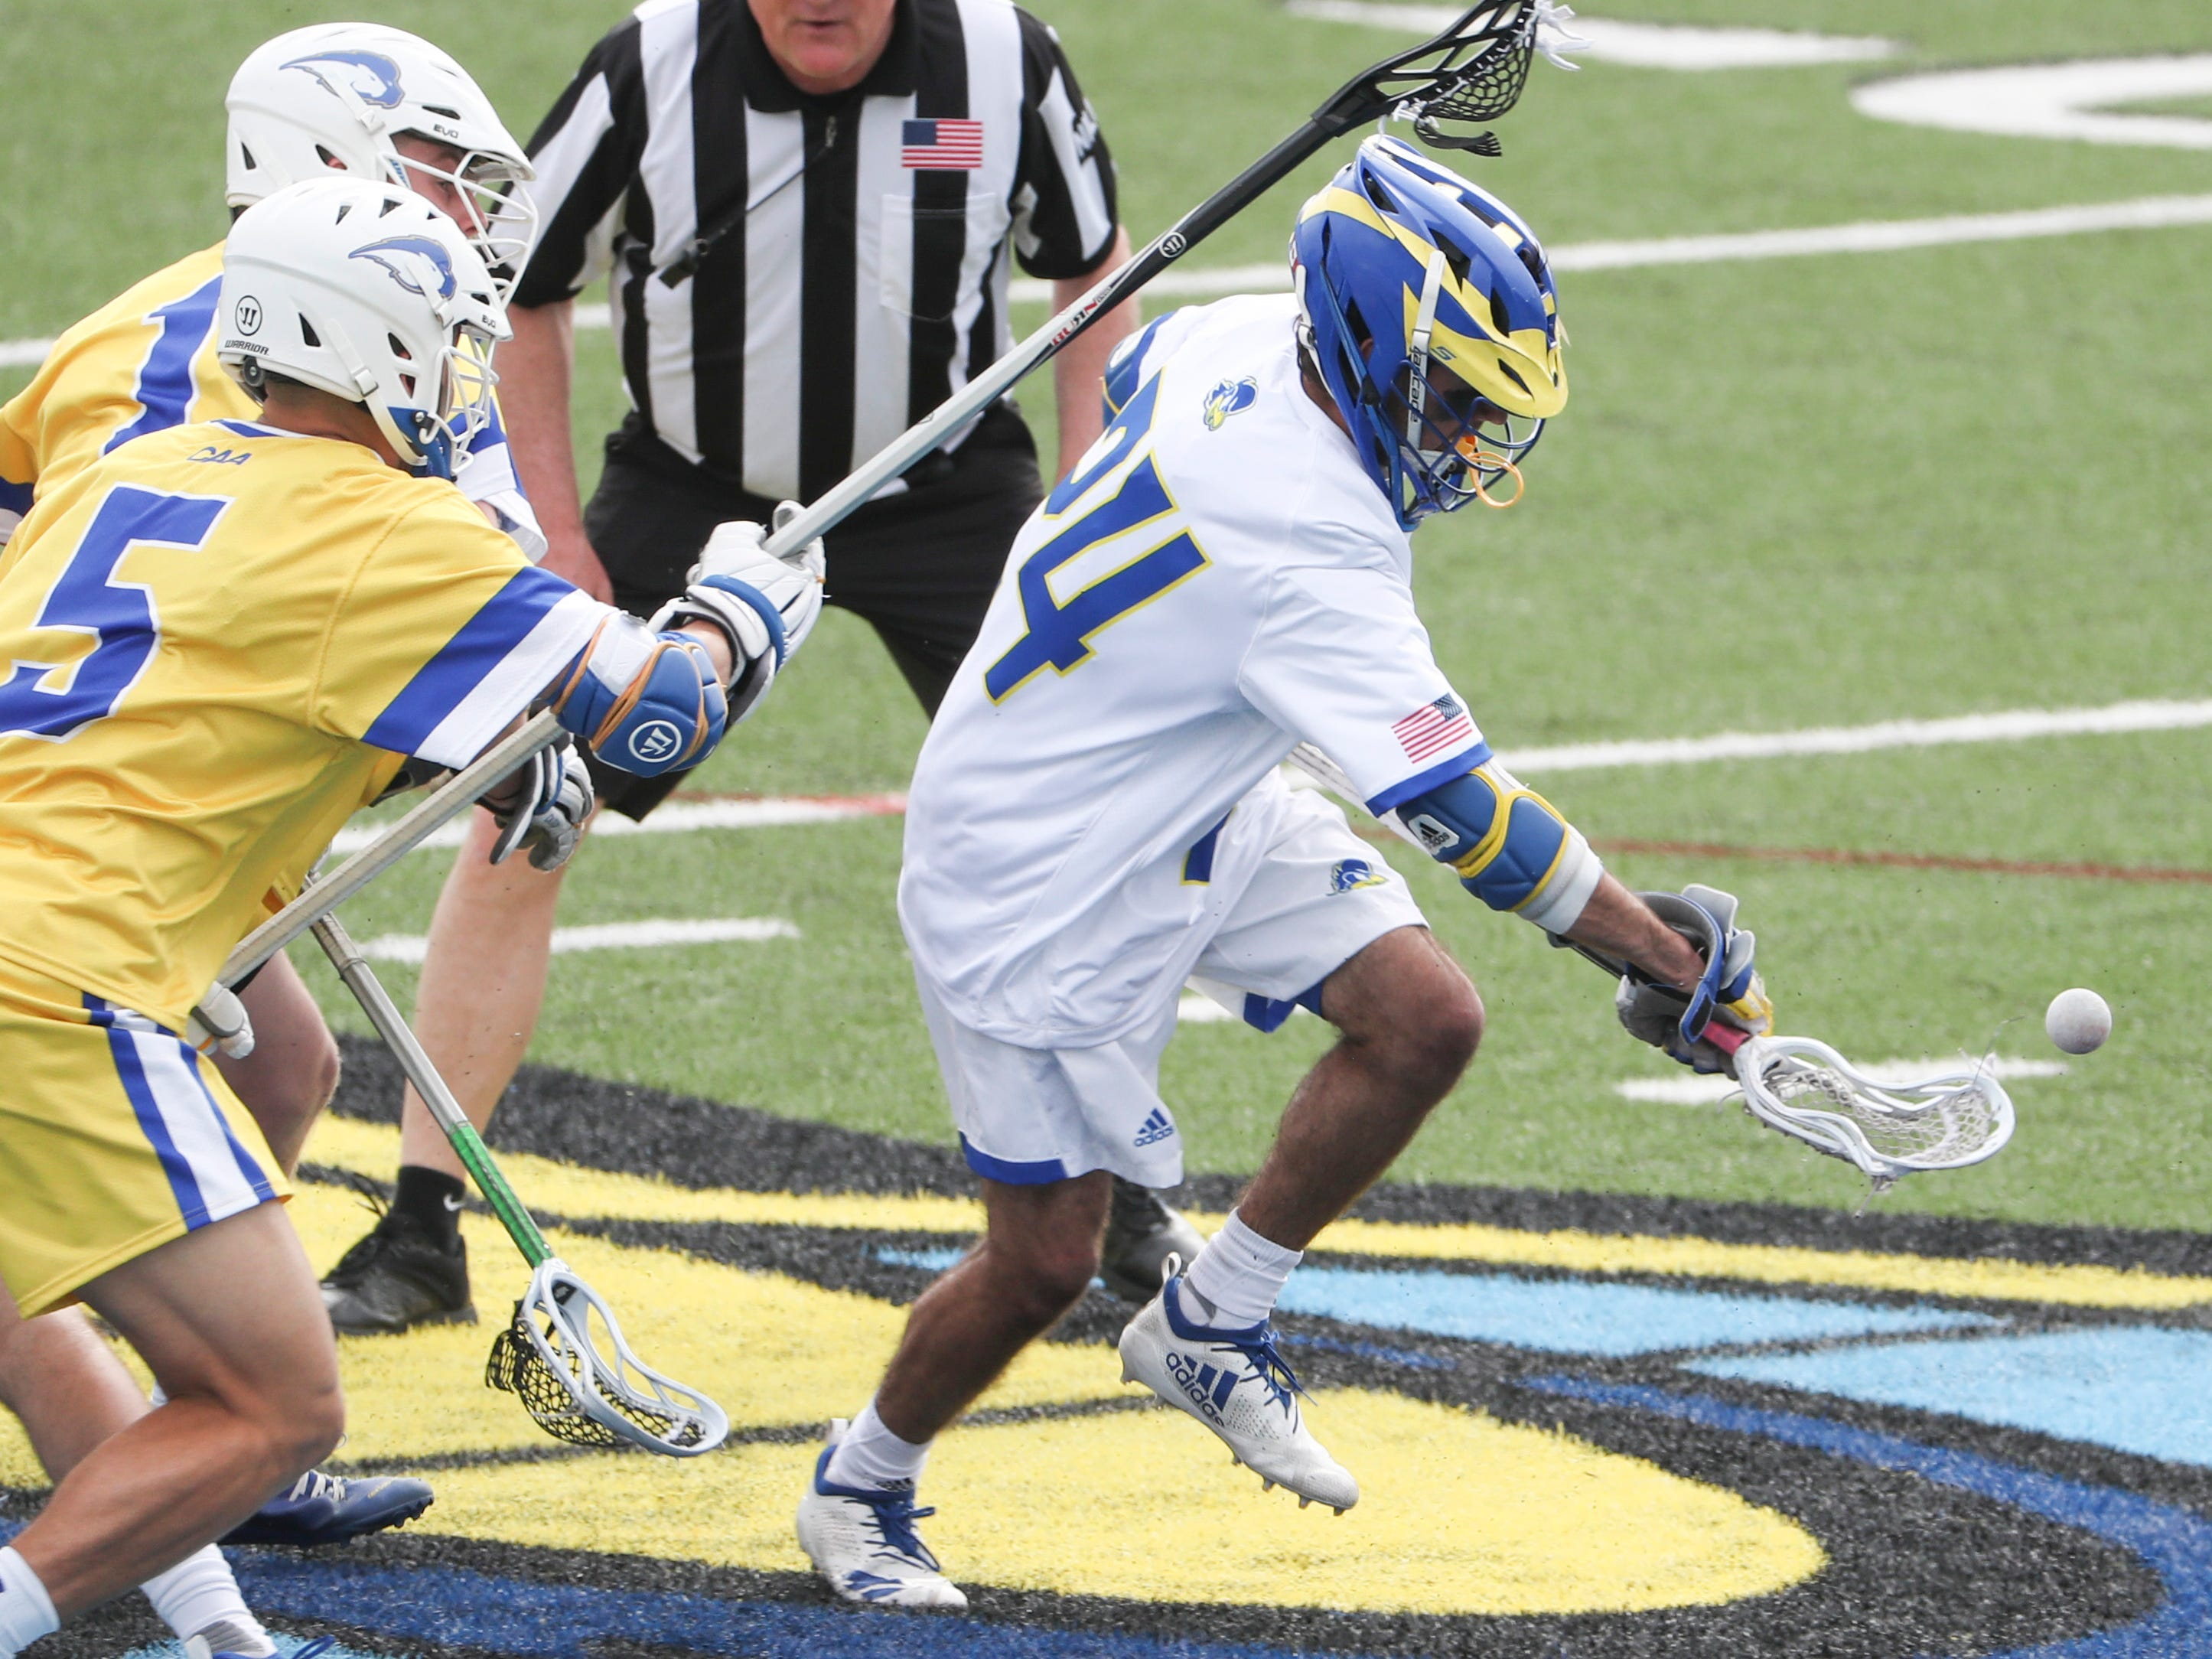 Delaware's Joe Lenskold comes away with the ball on a face-off in the fourth period of Delaware's 13-7 win against Hofstra Saturday at Delaware Stadium.